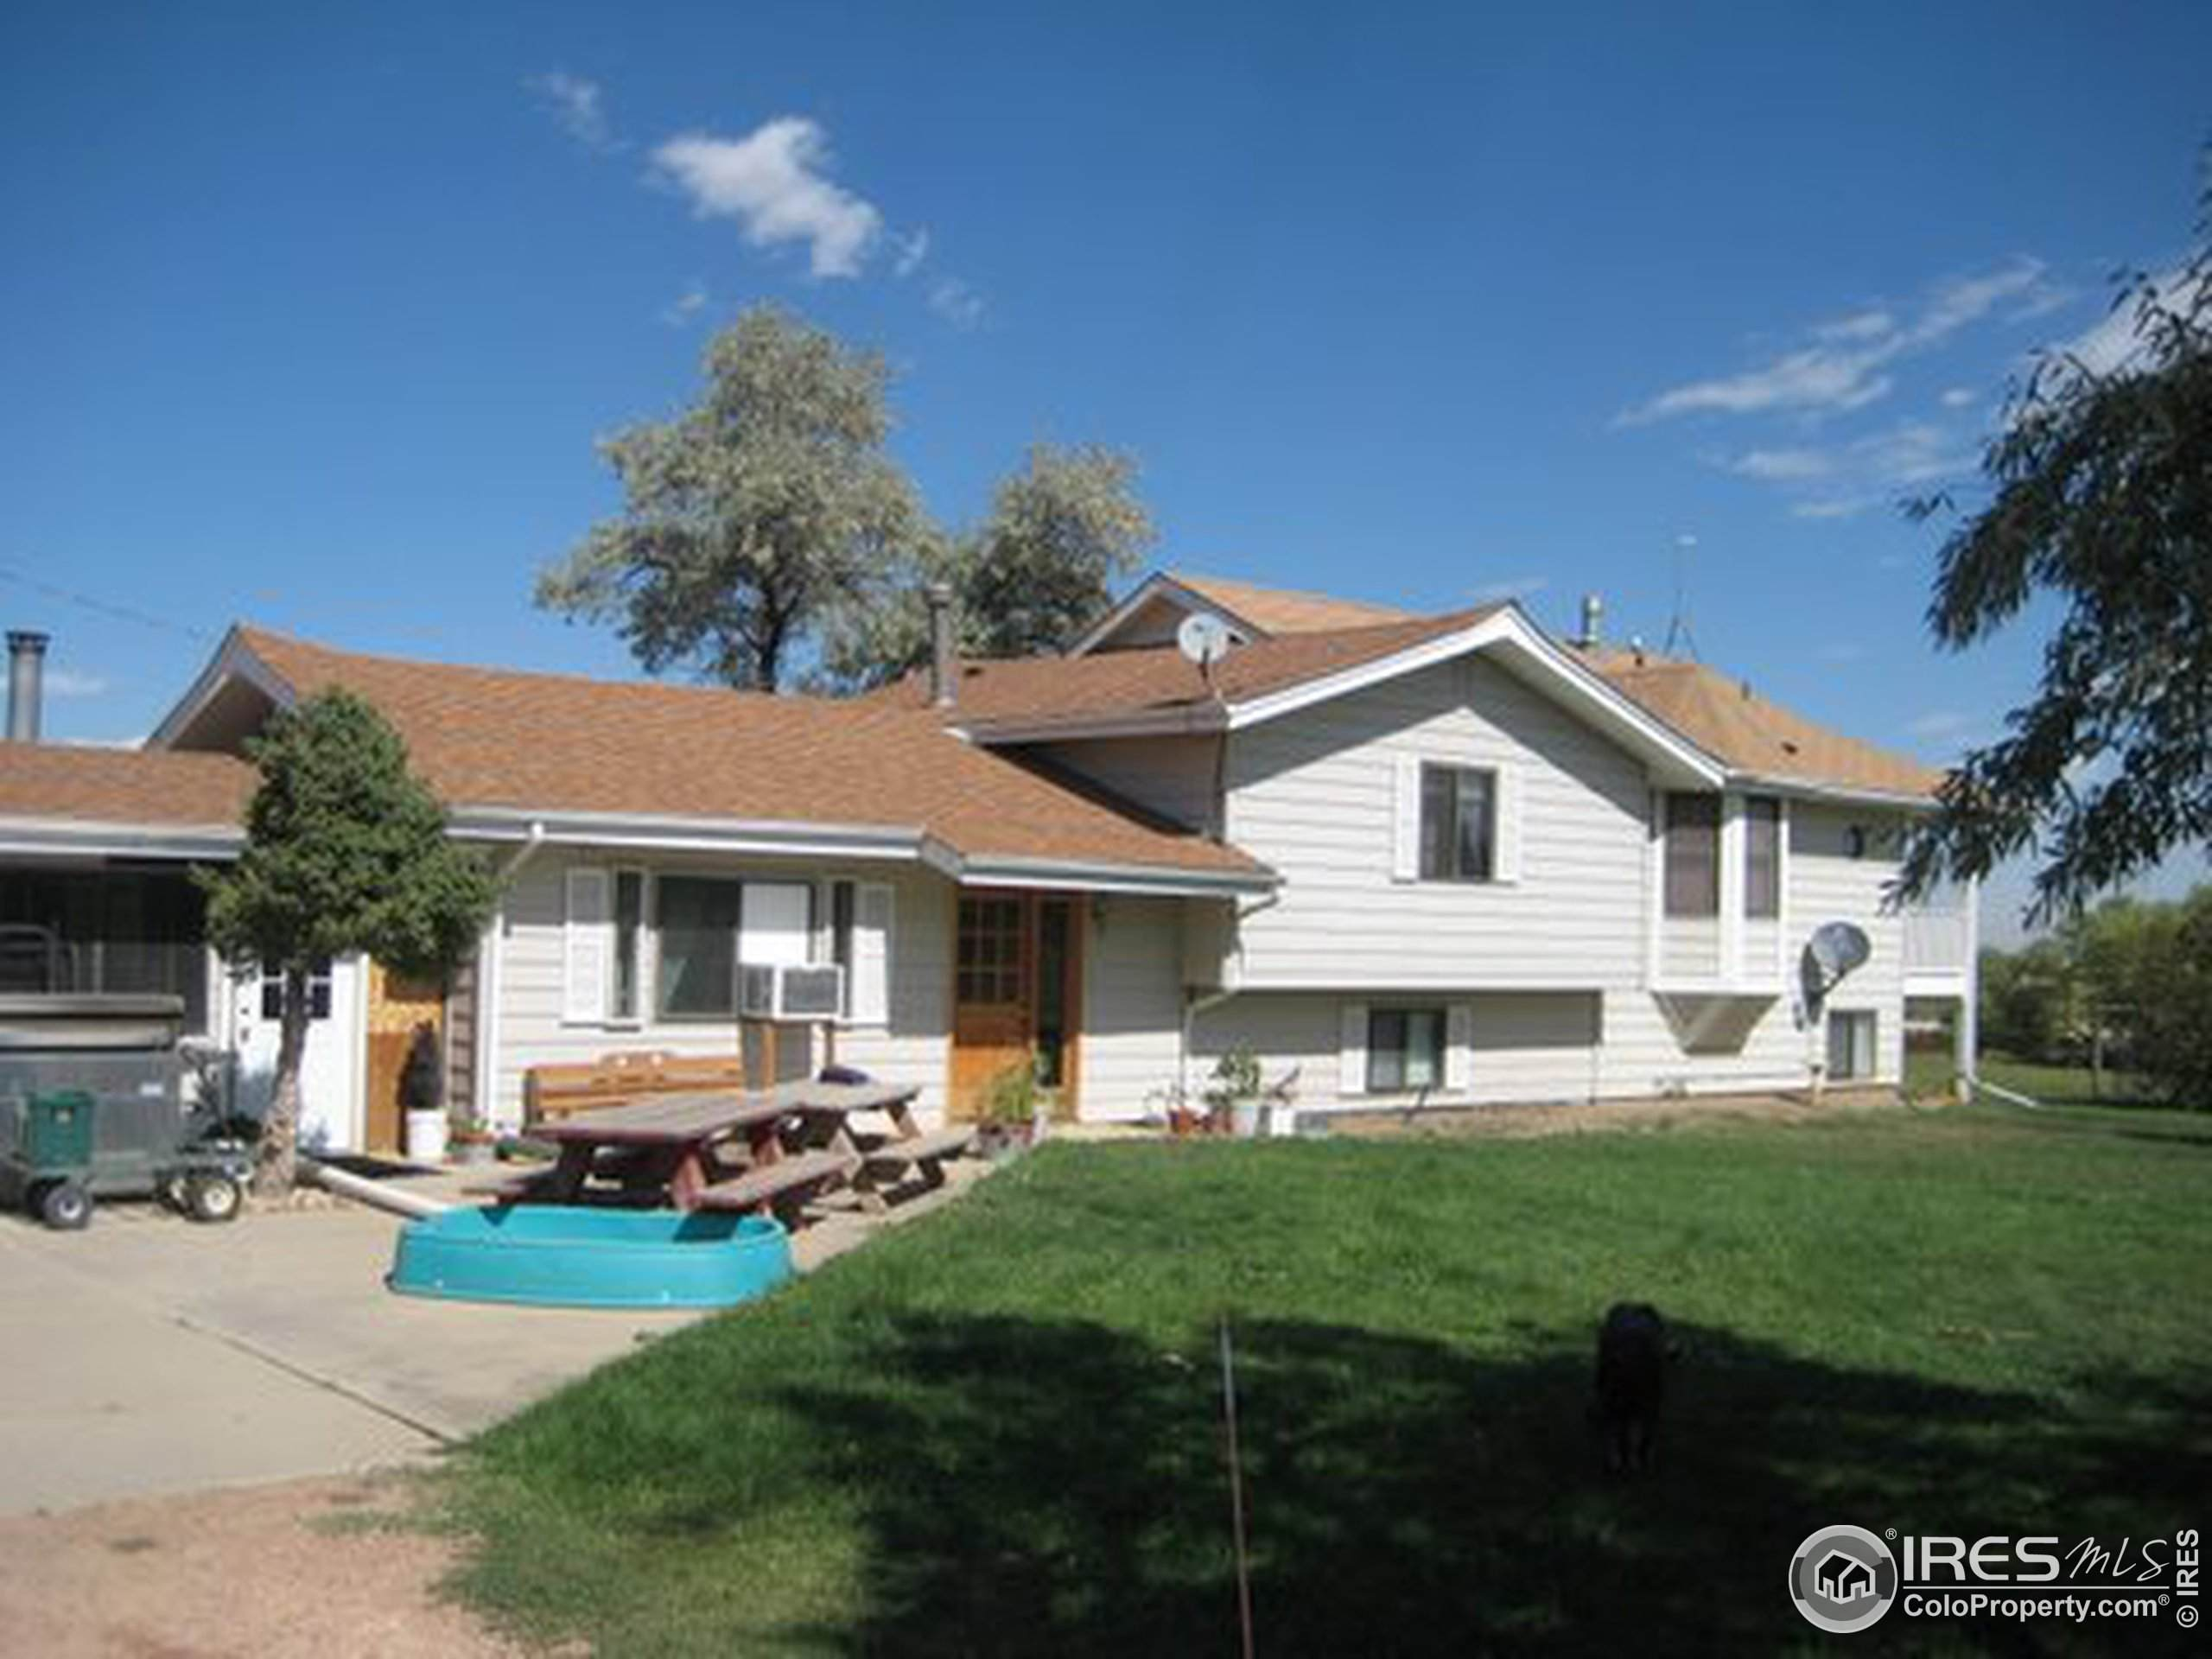 0 Crystal Mountain Rd, Bellvue, CO 80512 (MLS #939671) :: Downtown Real Estate Partners